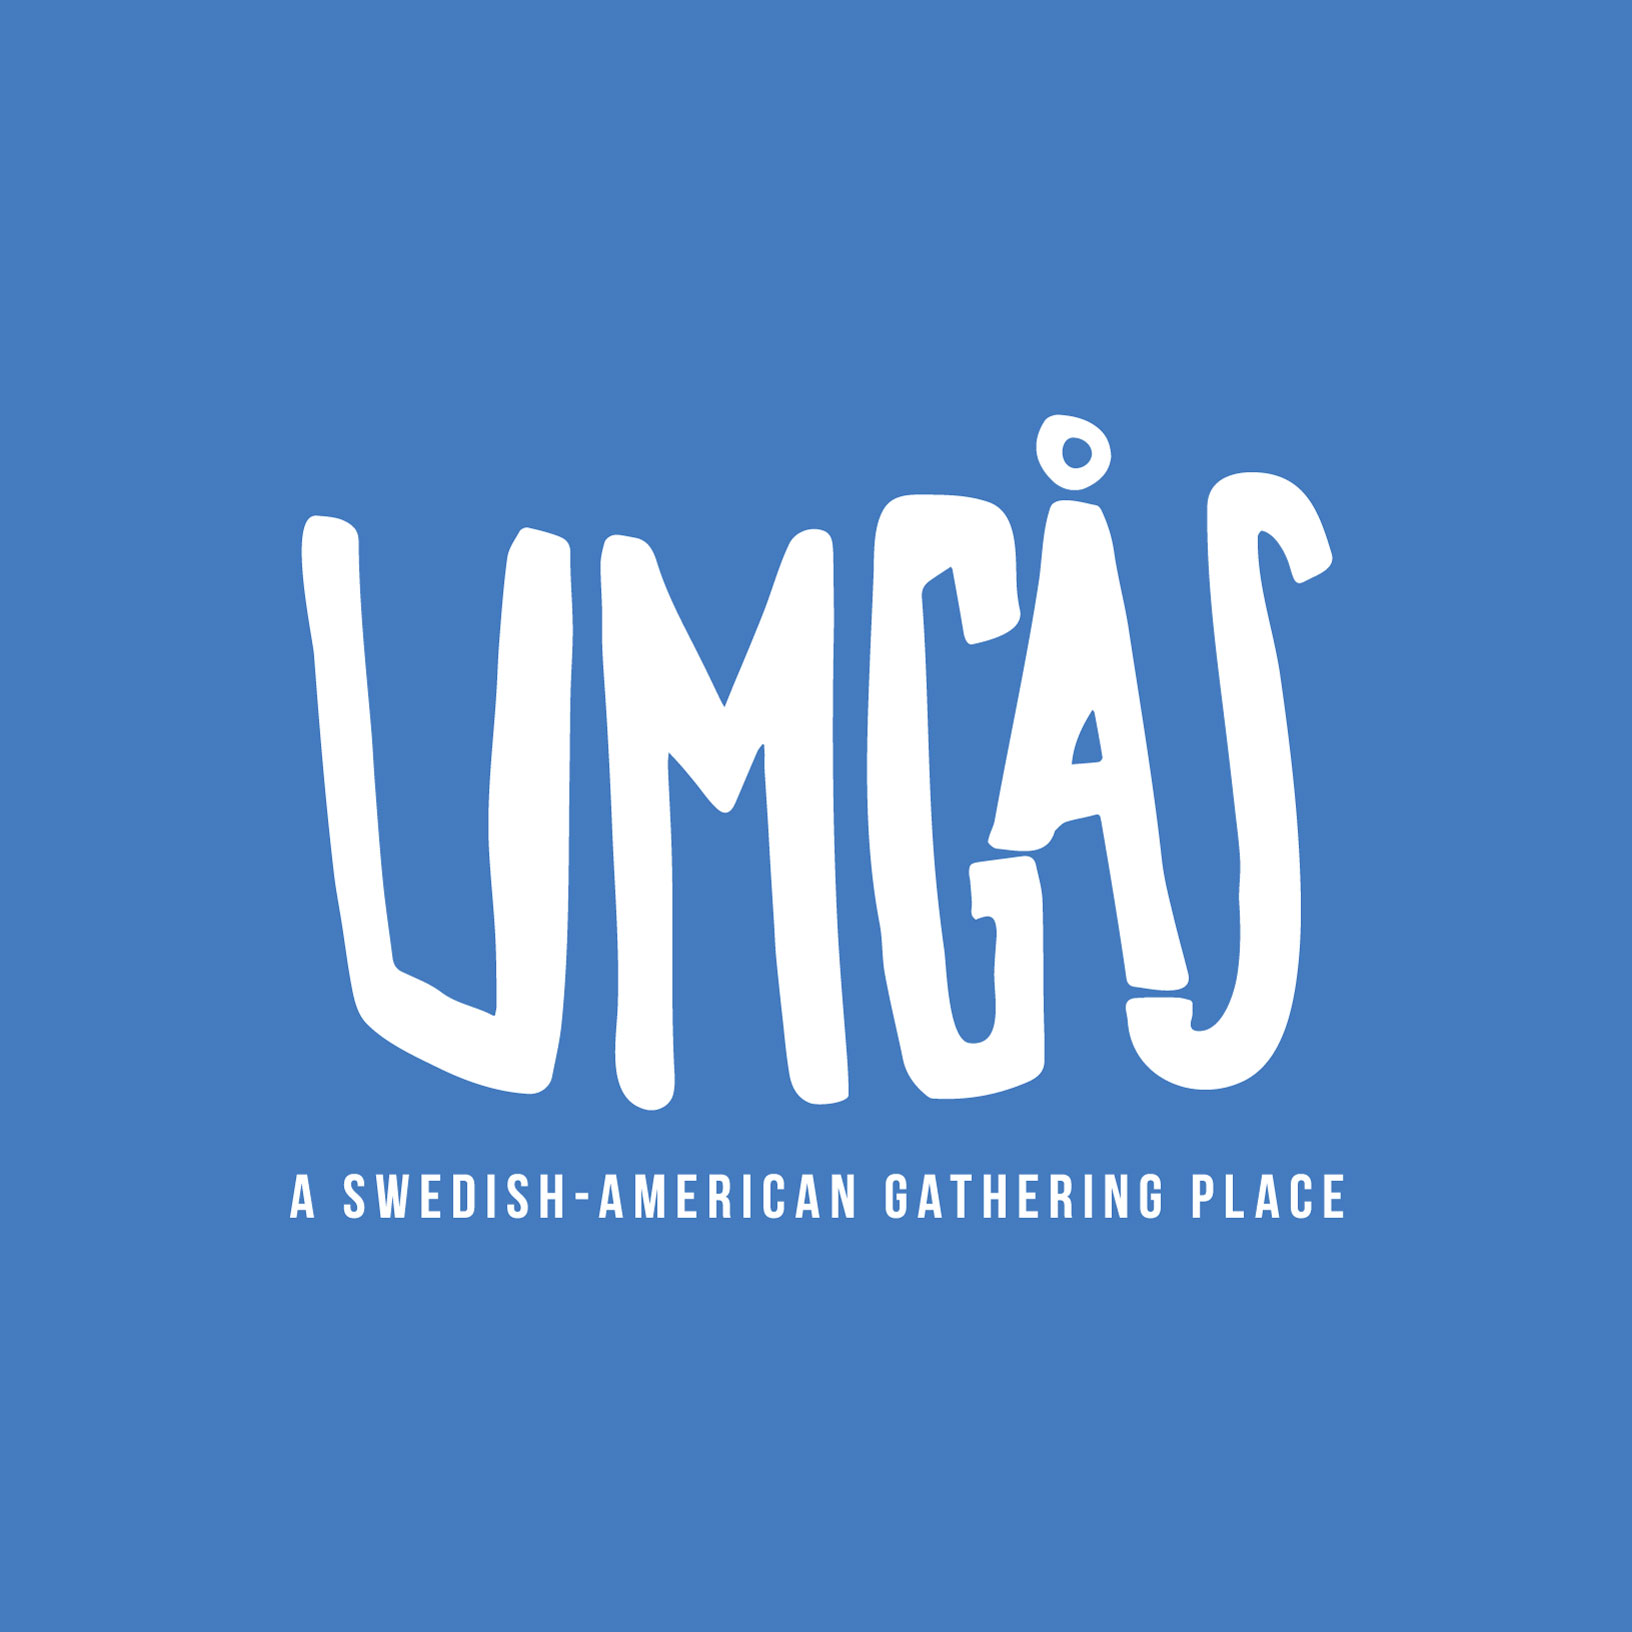 white handlettered UMGAS logo on a blue background